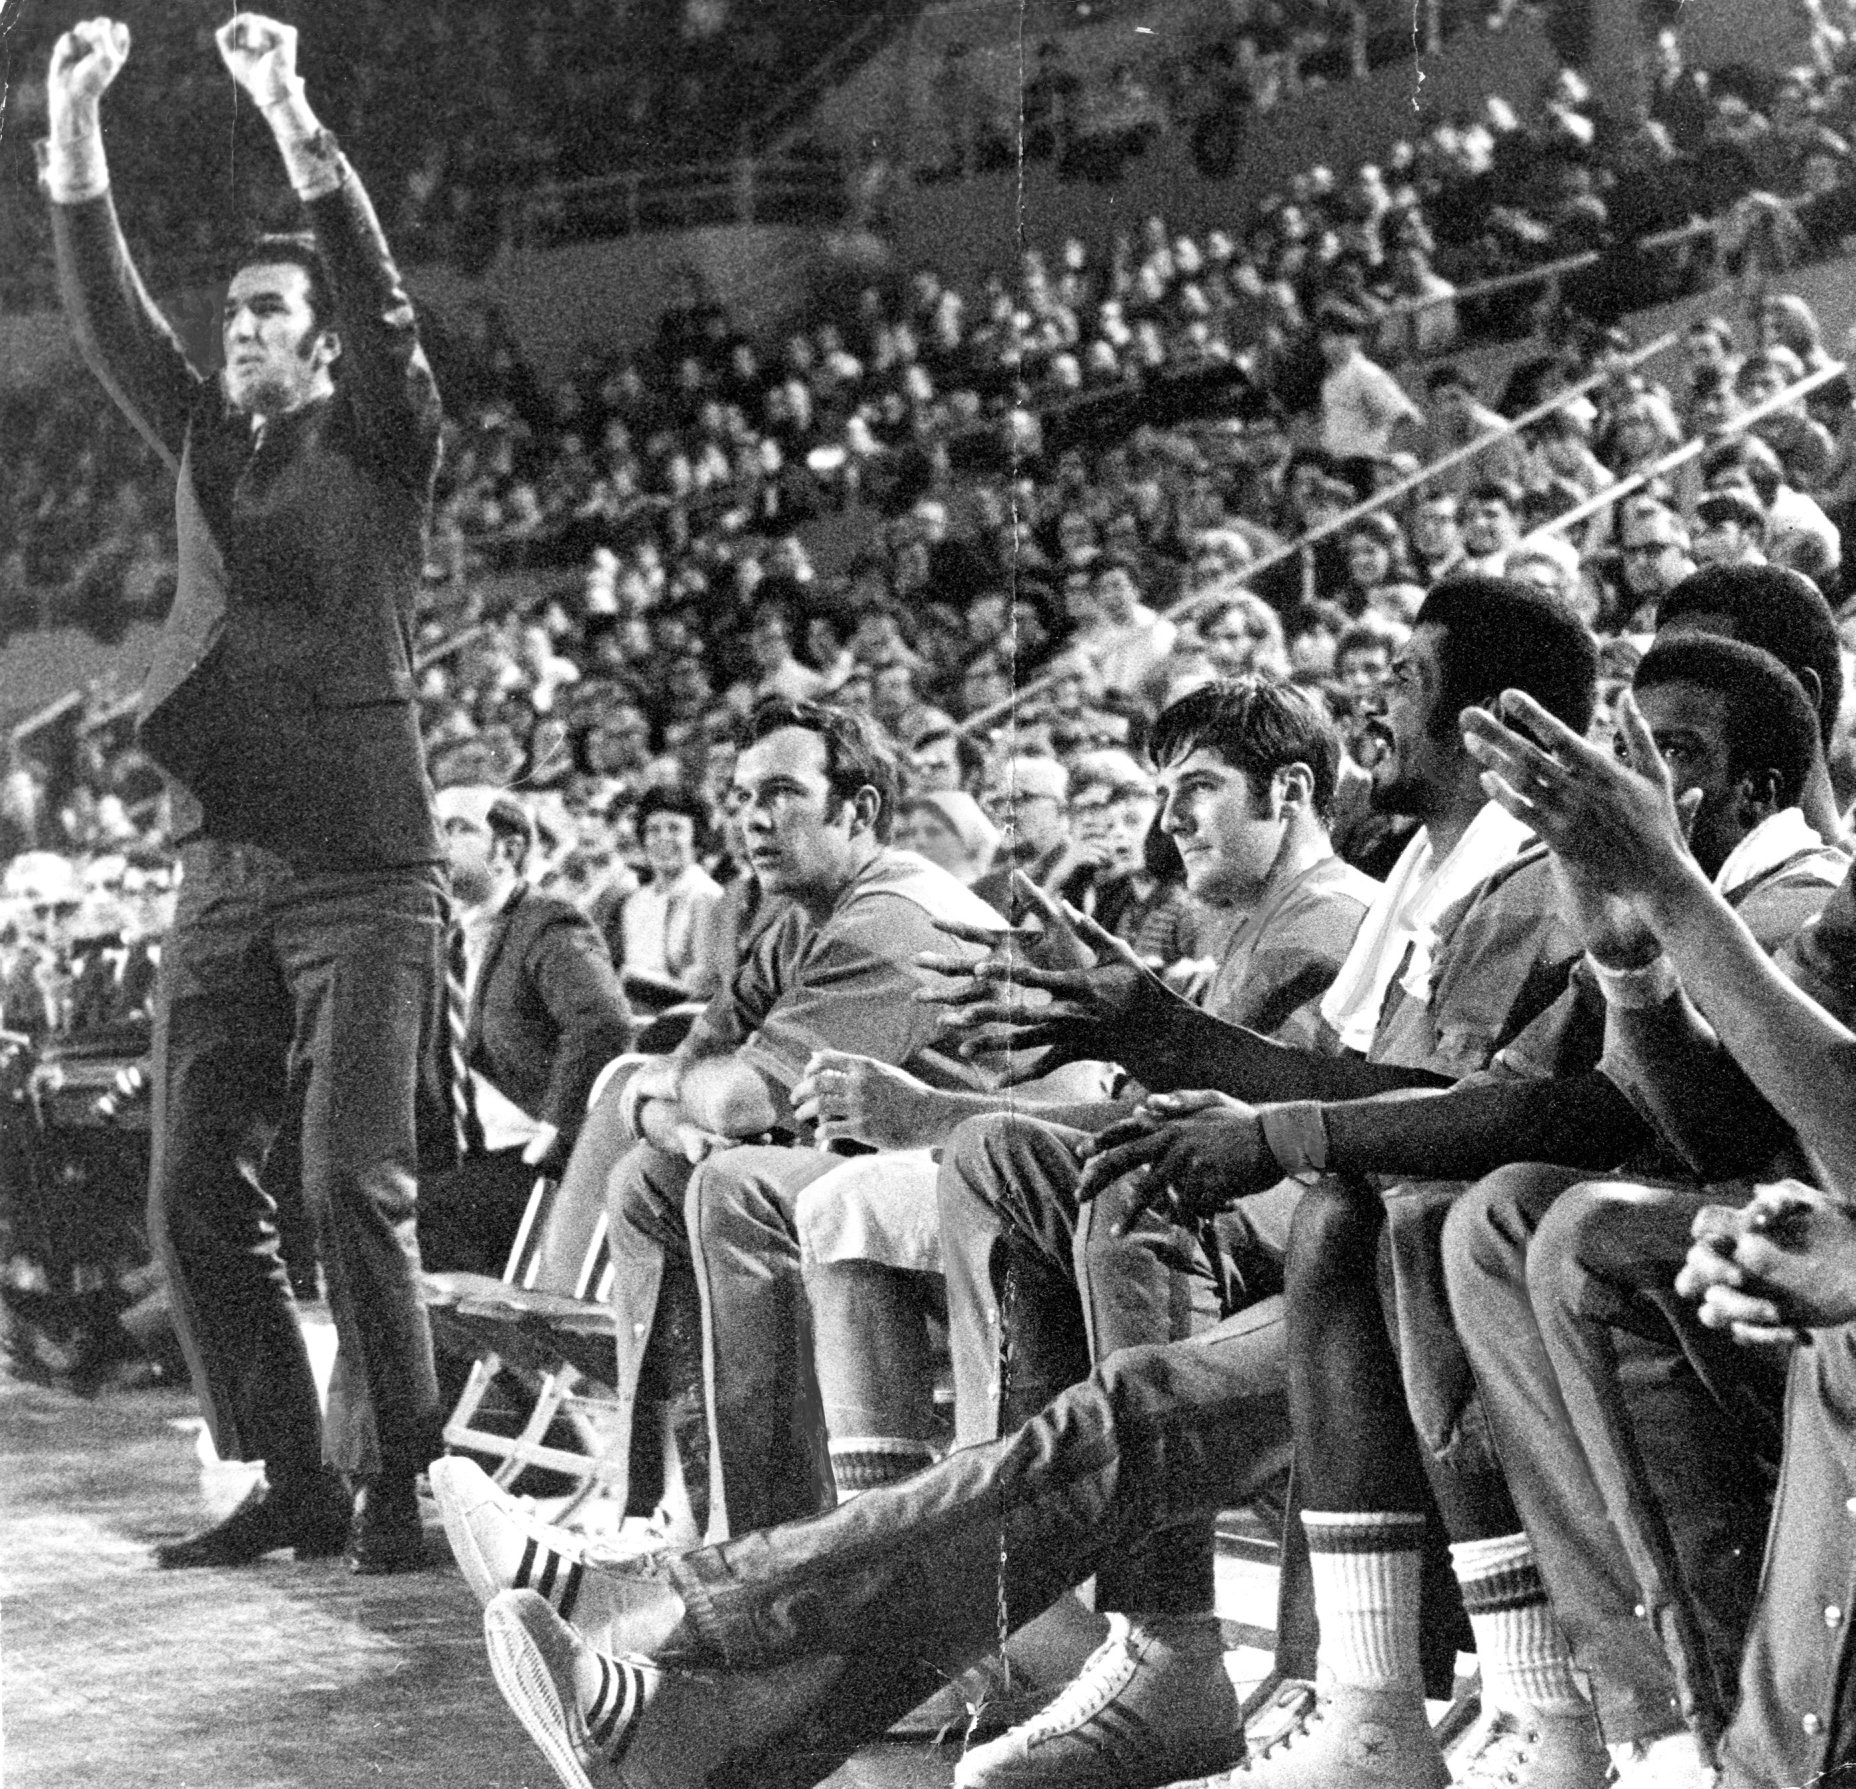 Dolph Schayes gives signals to his team during the Buffalo Braves' 97-91 win over the New York Knicks at Memorial Auditorium in 1970. Schayes died Thursday at age 87.